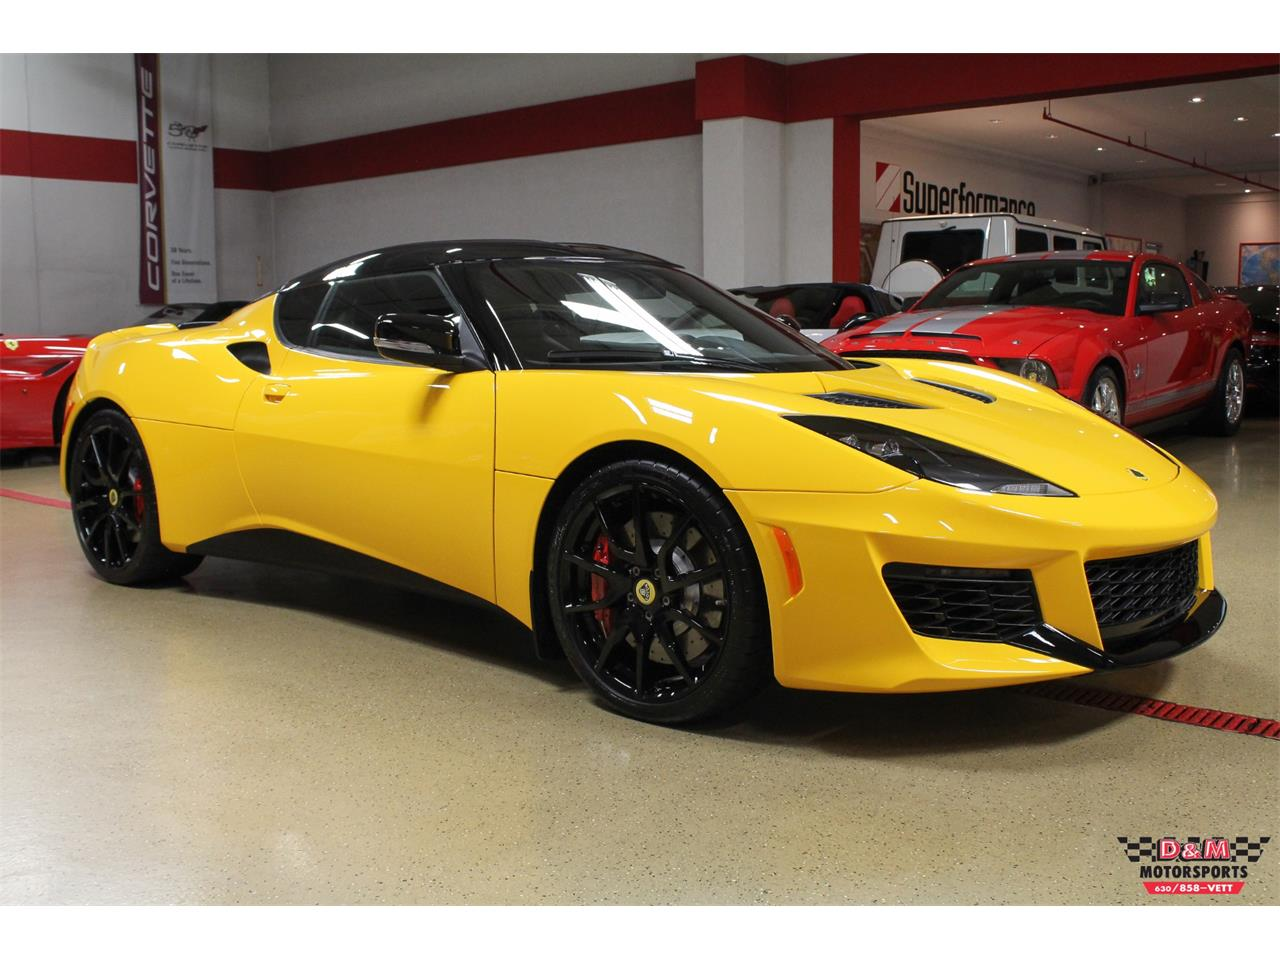 Large Picture of '17 Evora located in Illinois - $76,995.00 Offered by D & M Motorsports - OY1K